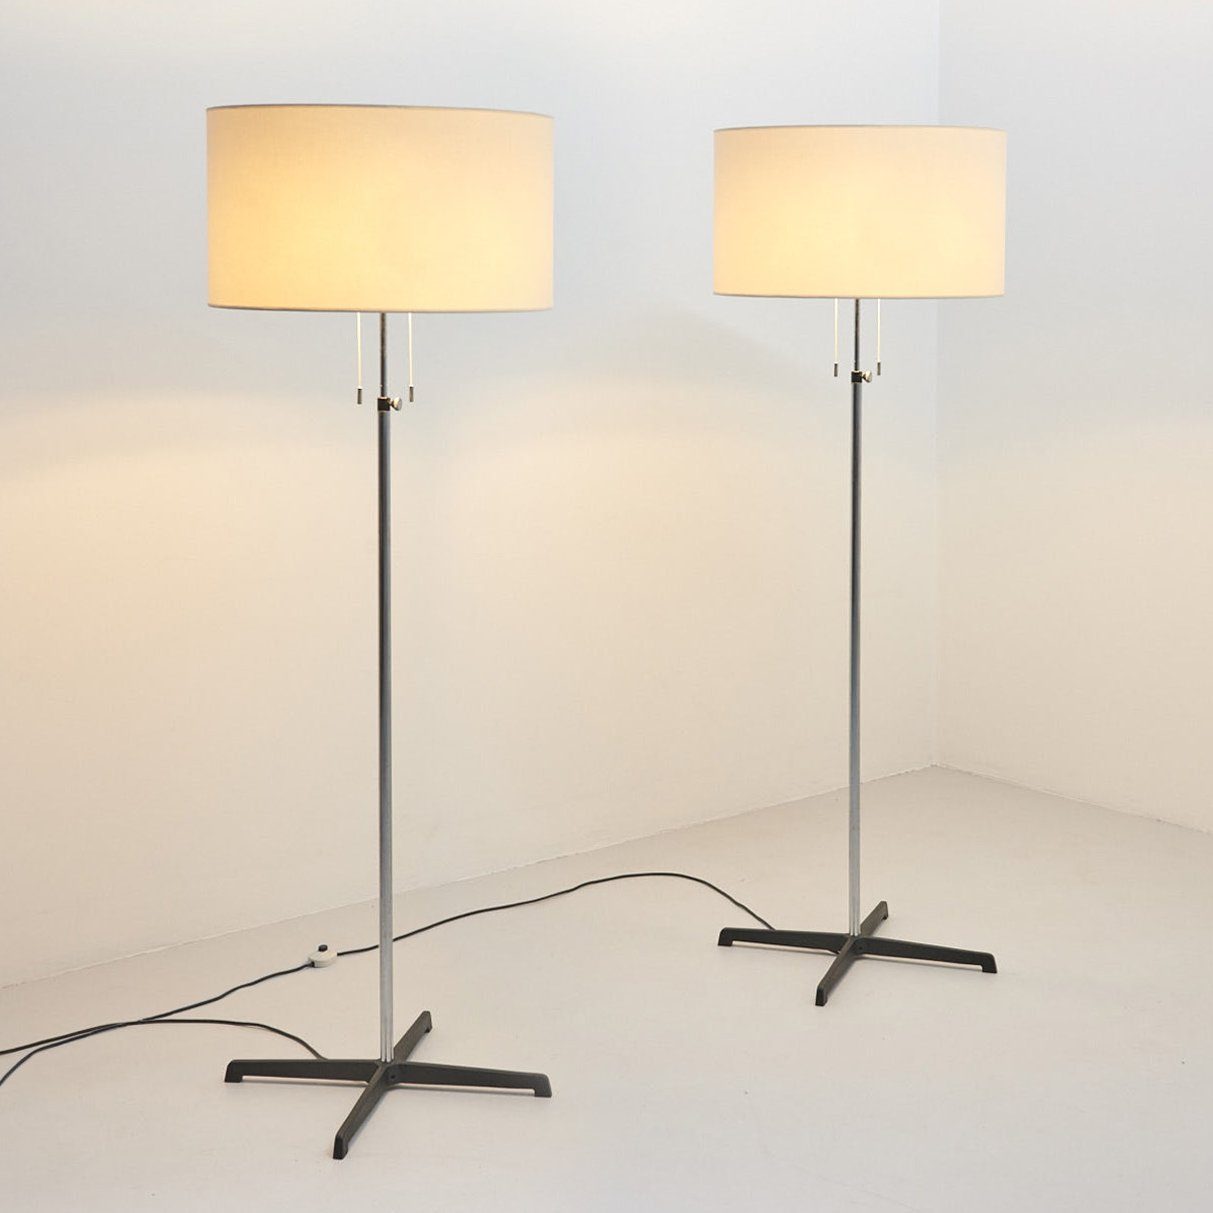 Leuchten Bilder Pair Of Floor Lamps By Staff Leuchten, Germany 1960's | #145328